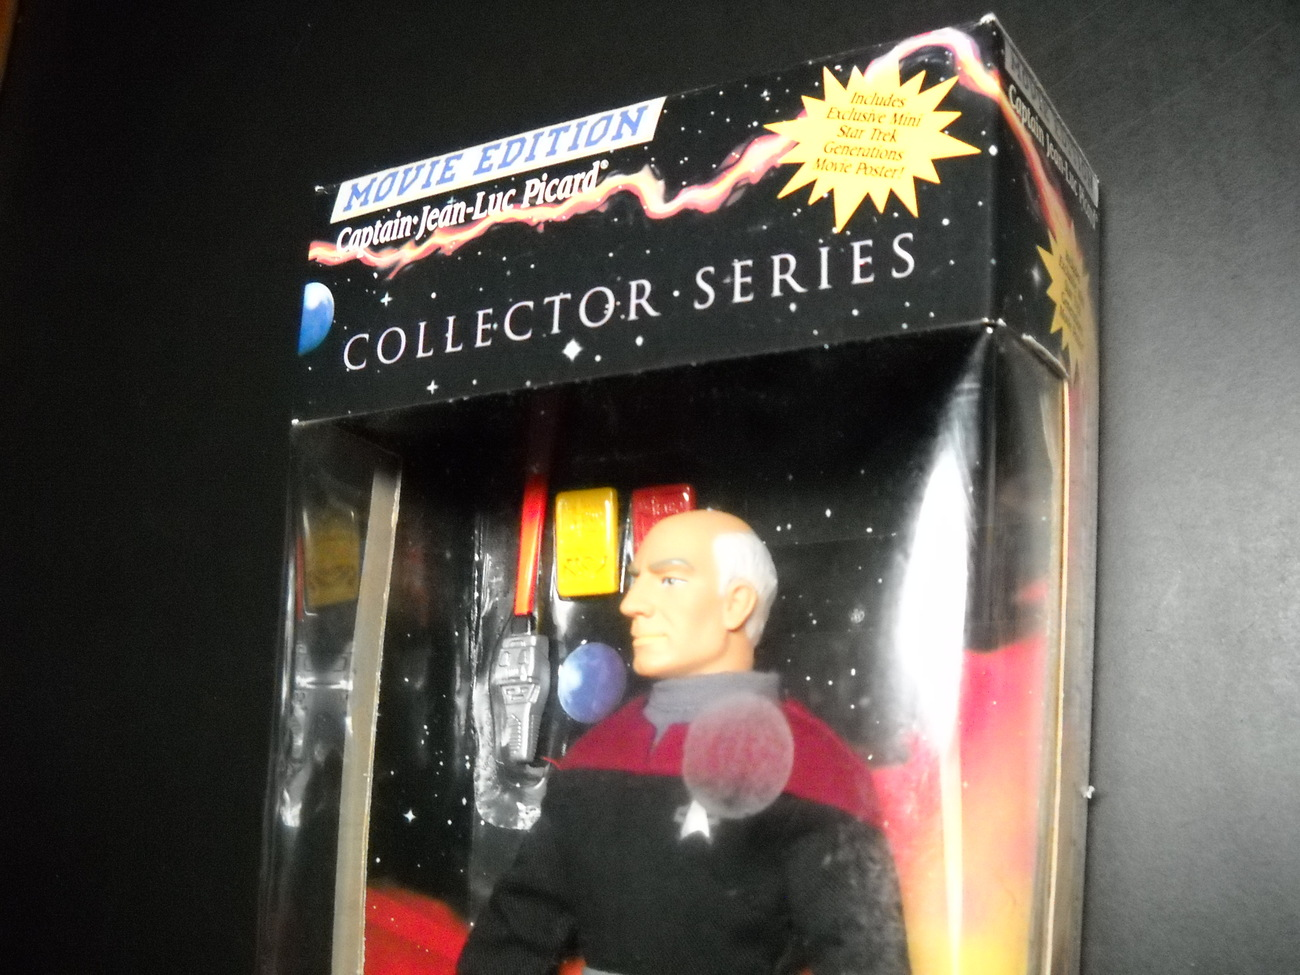 Star Trek Collector Generations Movie Edition Captain Jean-Luc Picard Sealed Box